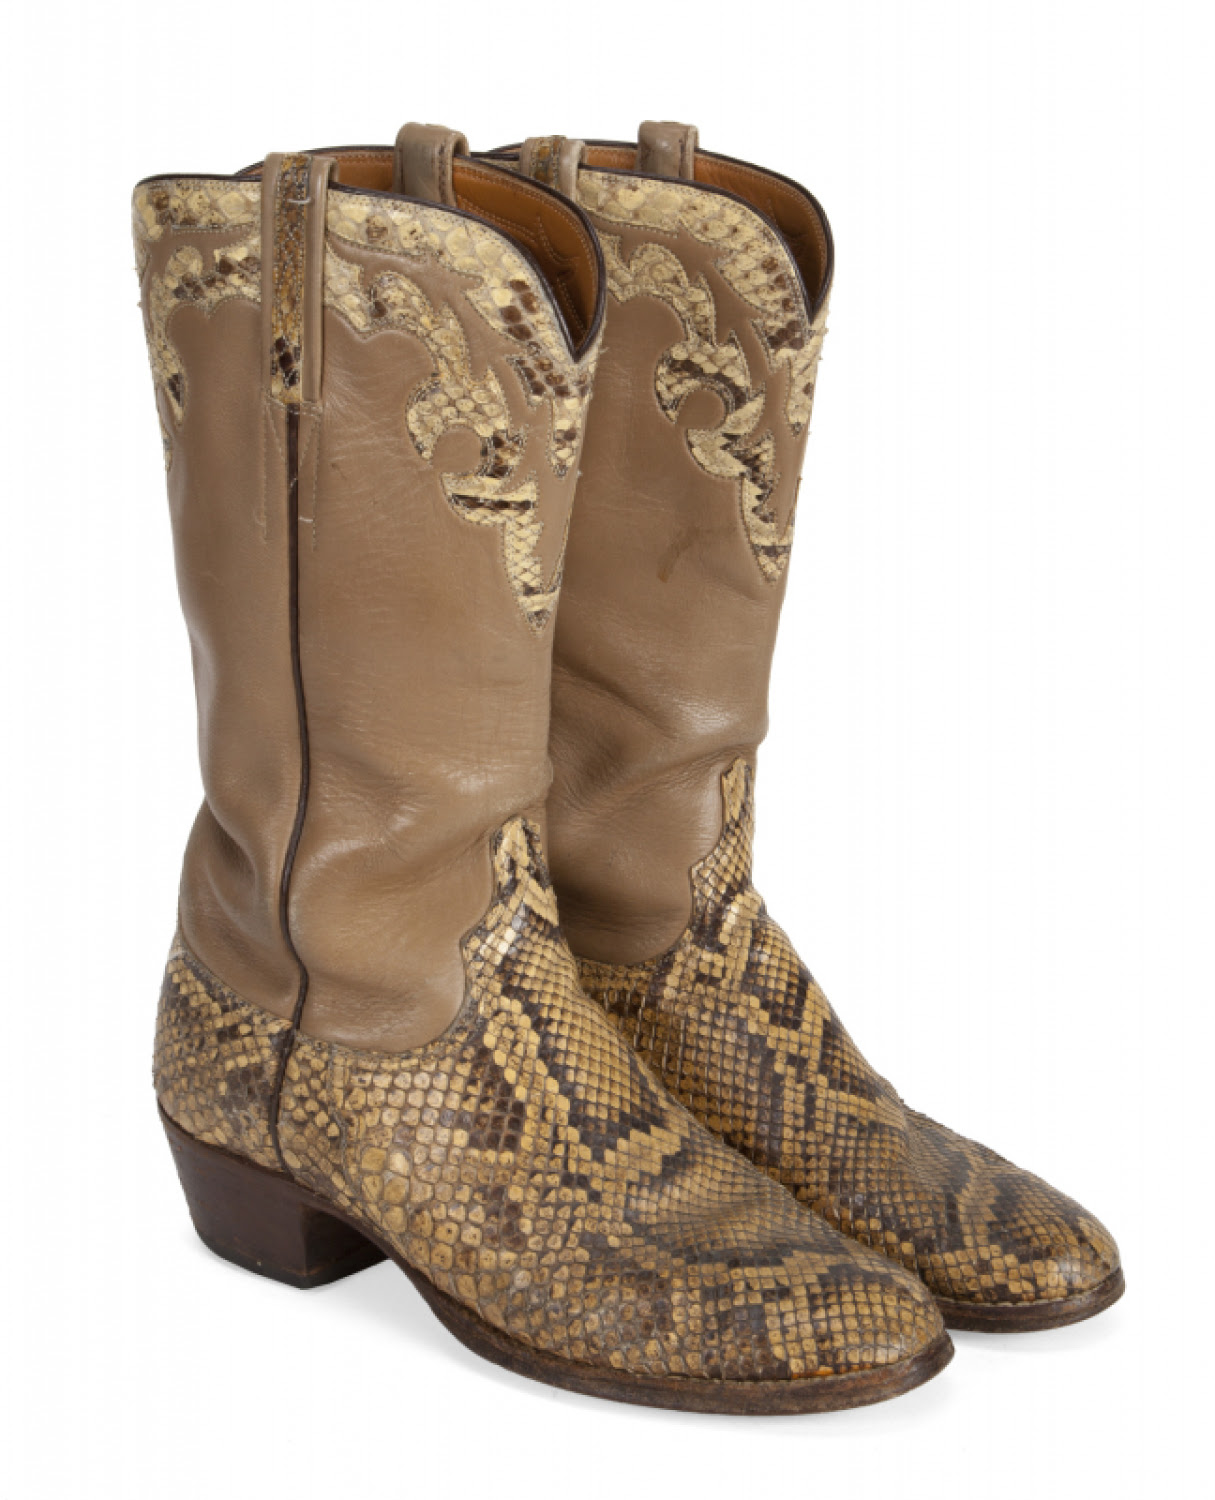 RONNIE JAMES DIO SNAKESKIN LUCCHESE BOOTS